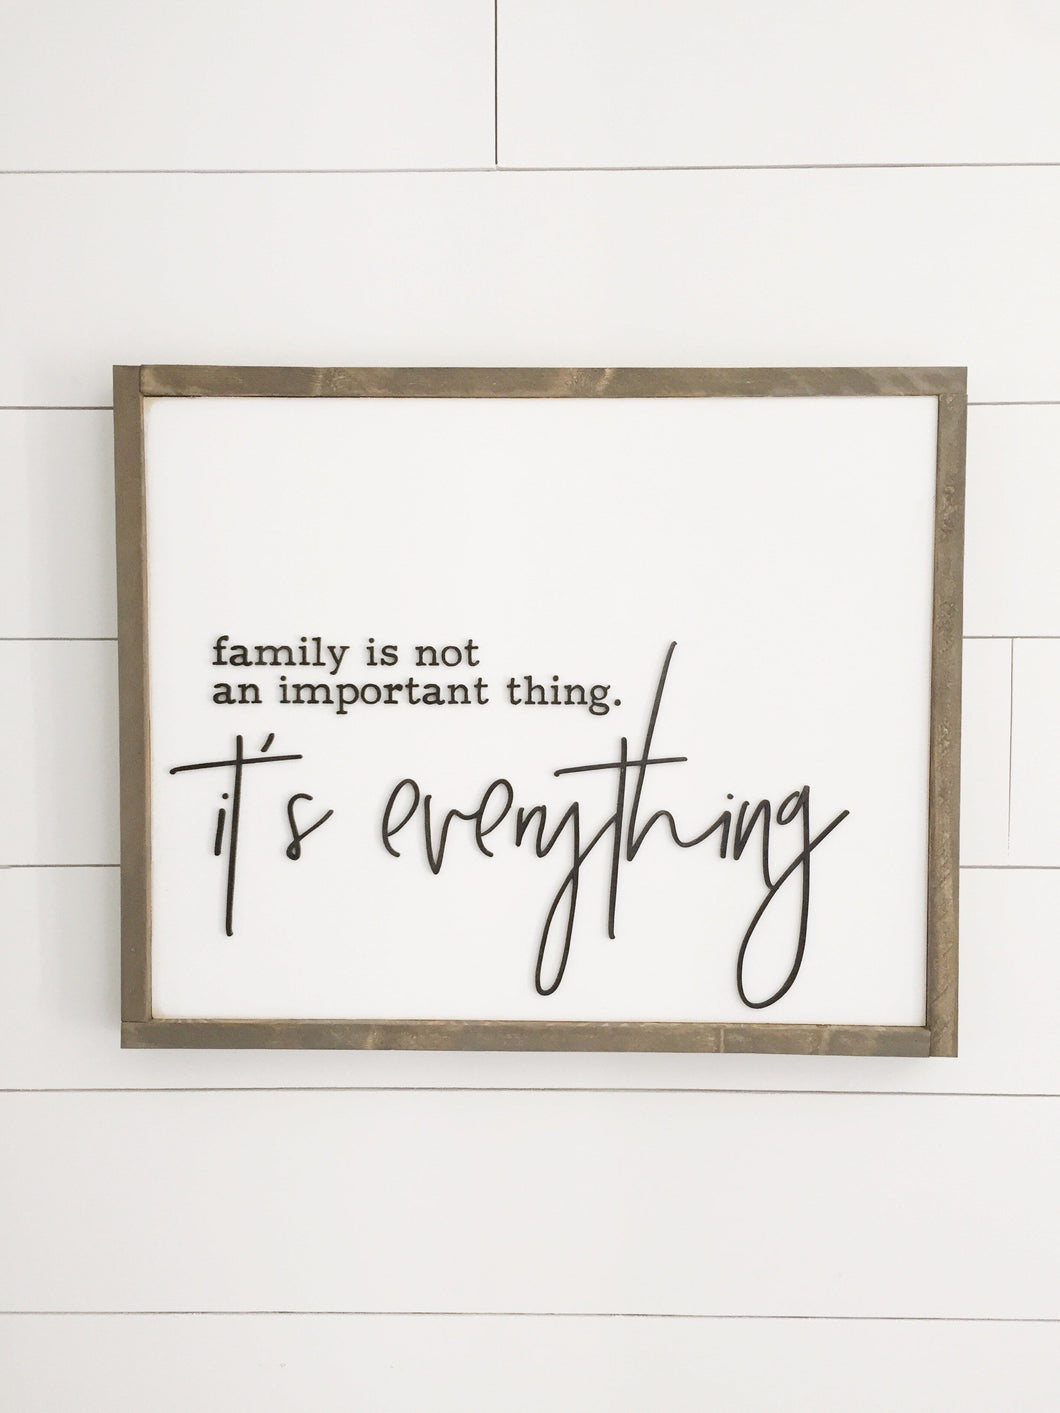 Family isnt an important thing, its everything - 3D wood sign- family- Custom sign- home decor wall art